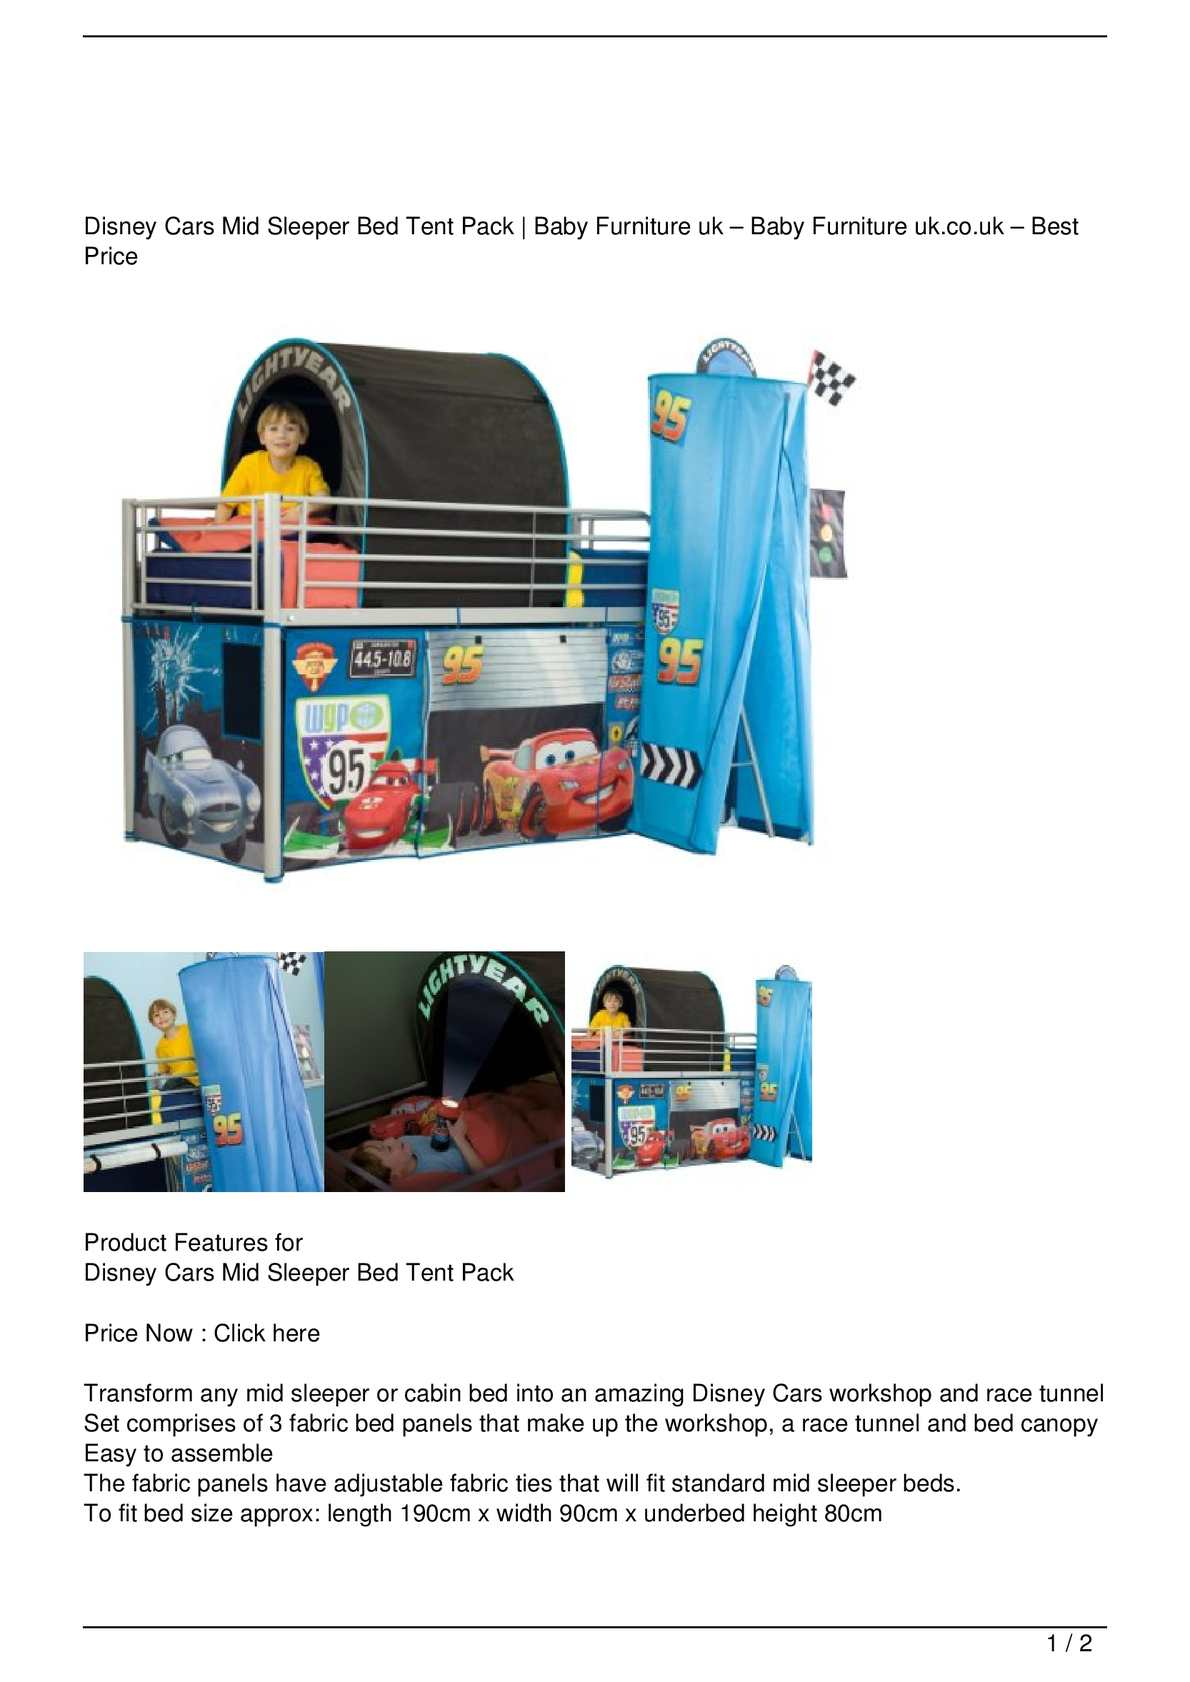 Picture of: Calameo Disney Cars Mid Sleeper Bed Tent Pack Promo Offer